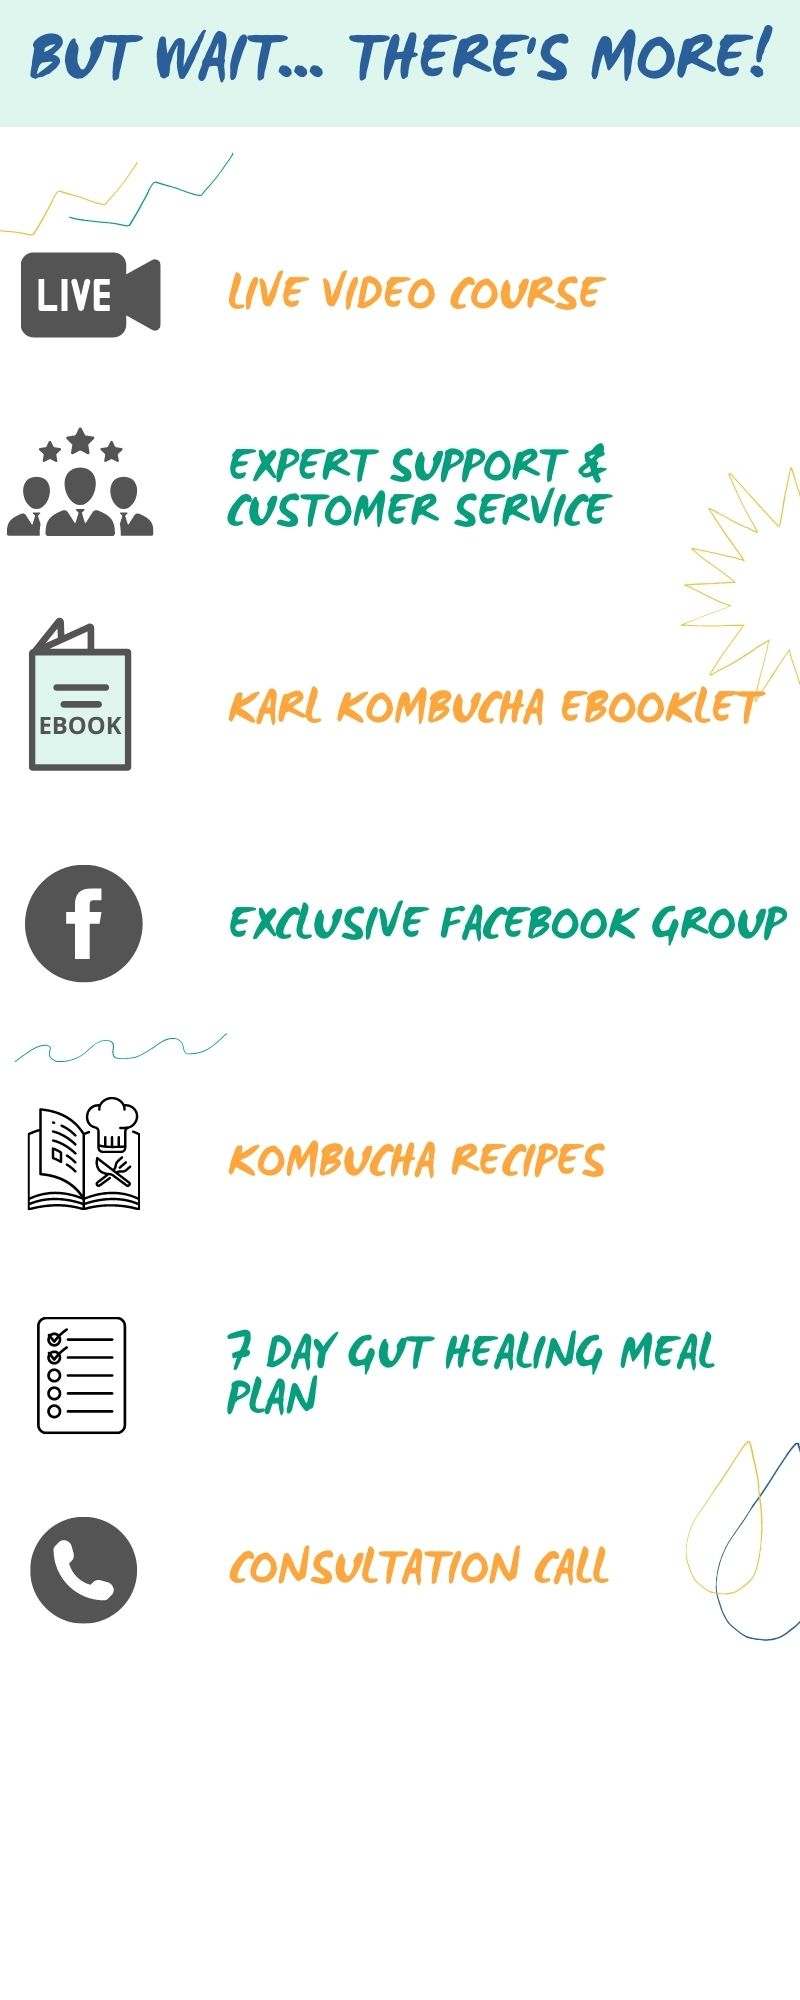 Karl Kombucha Kit also includes, video course, expert support, ebooklet, facebook group, recipes, 7 Day Meal Plan, Consultation Call